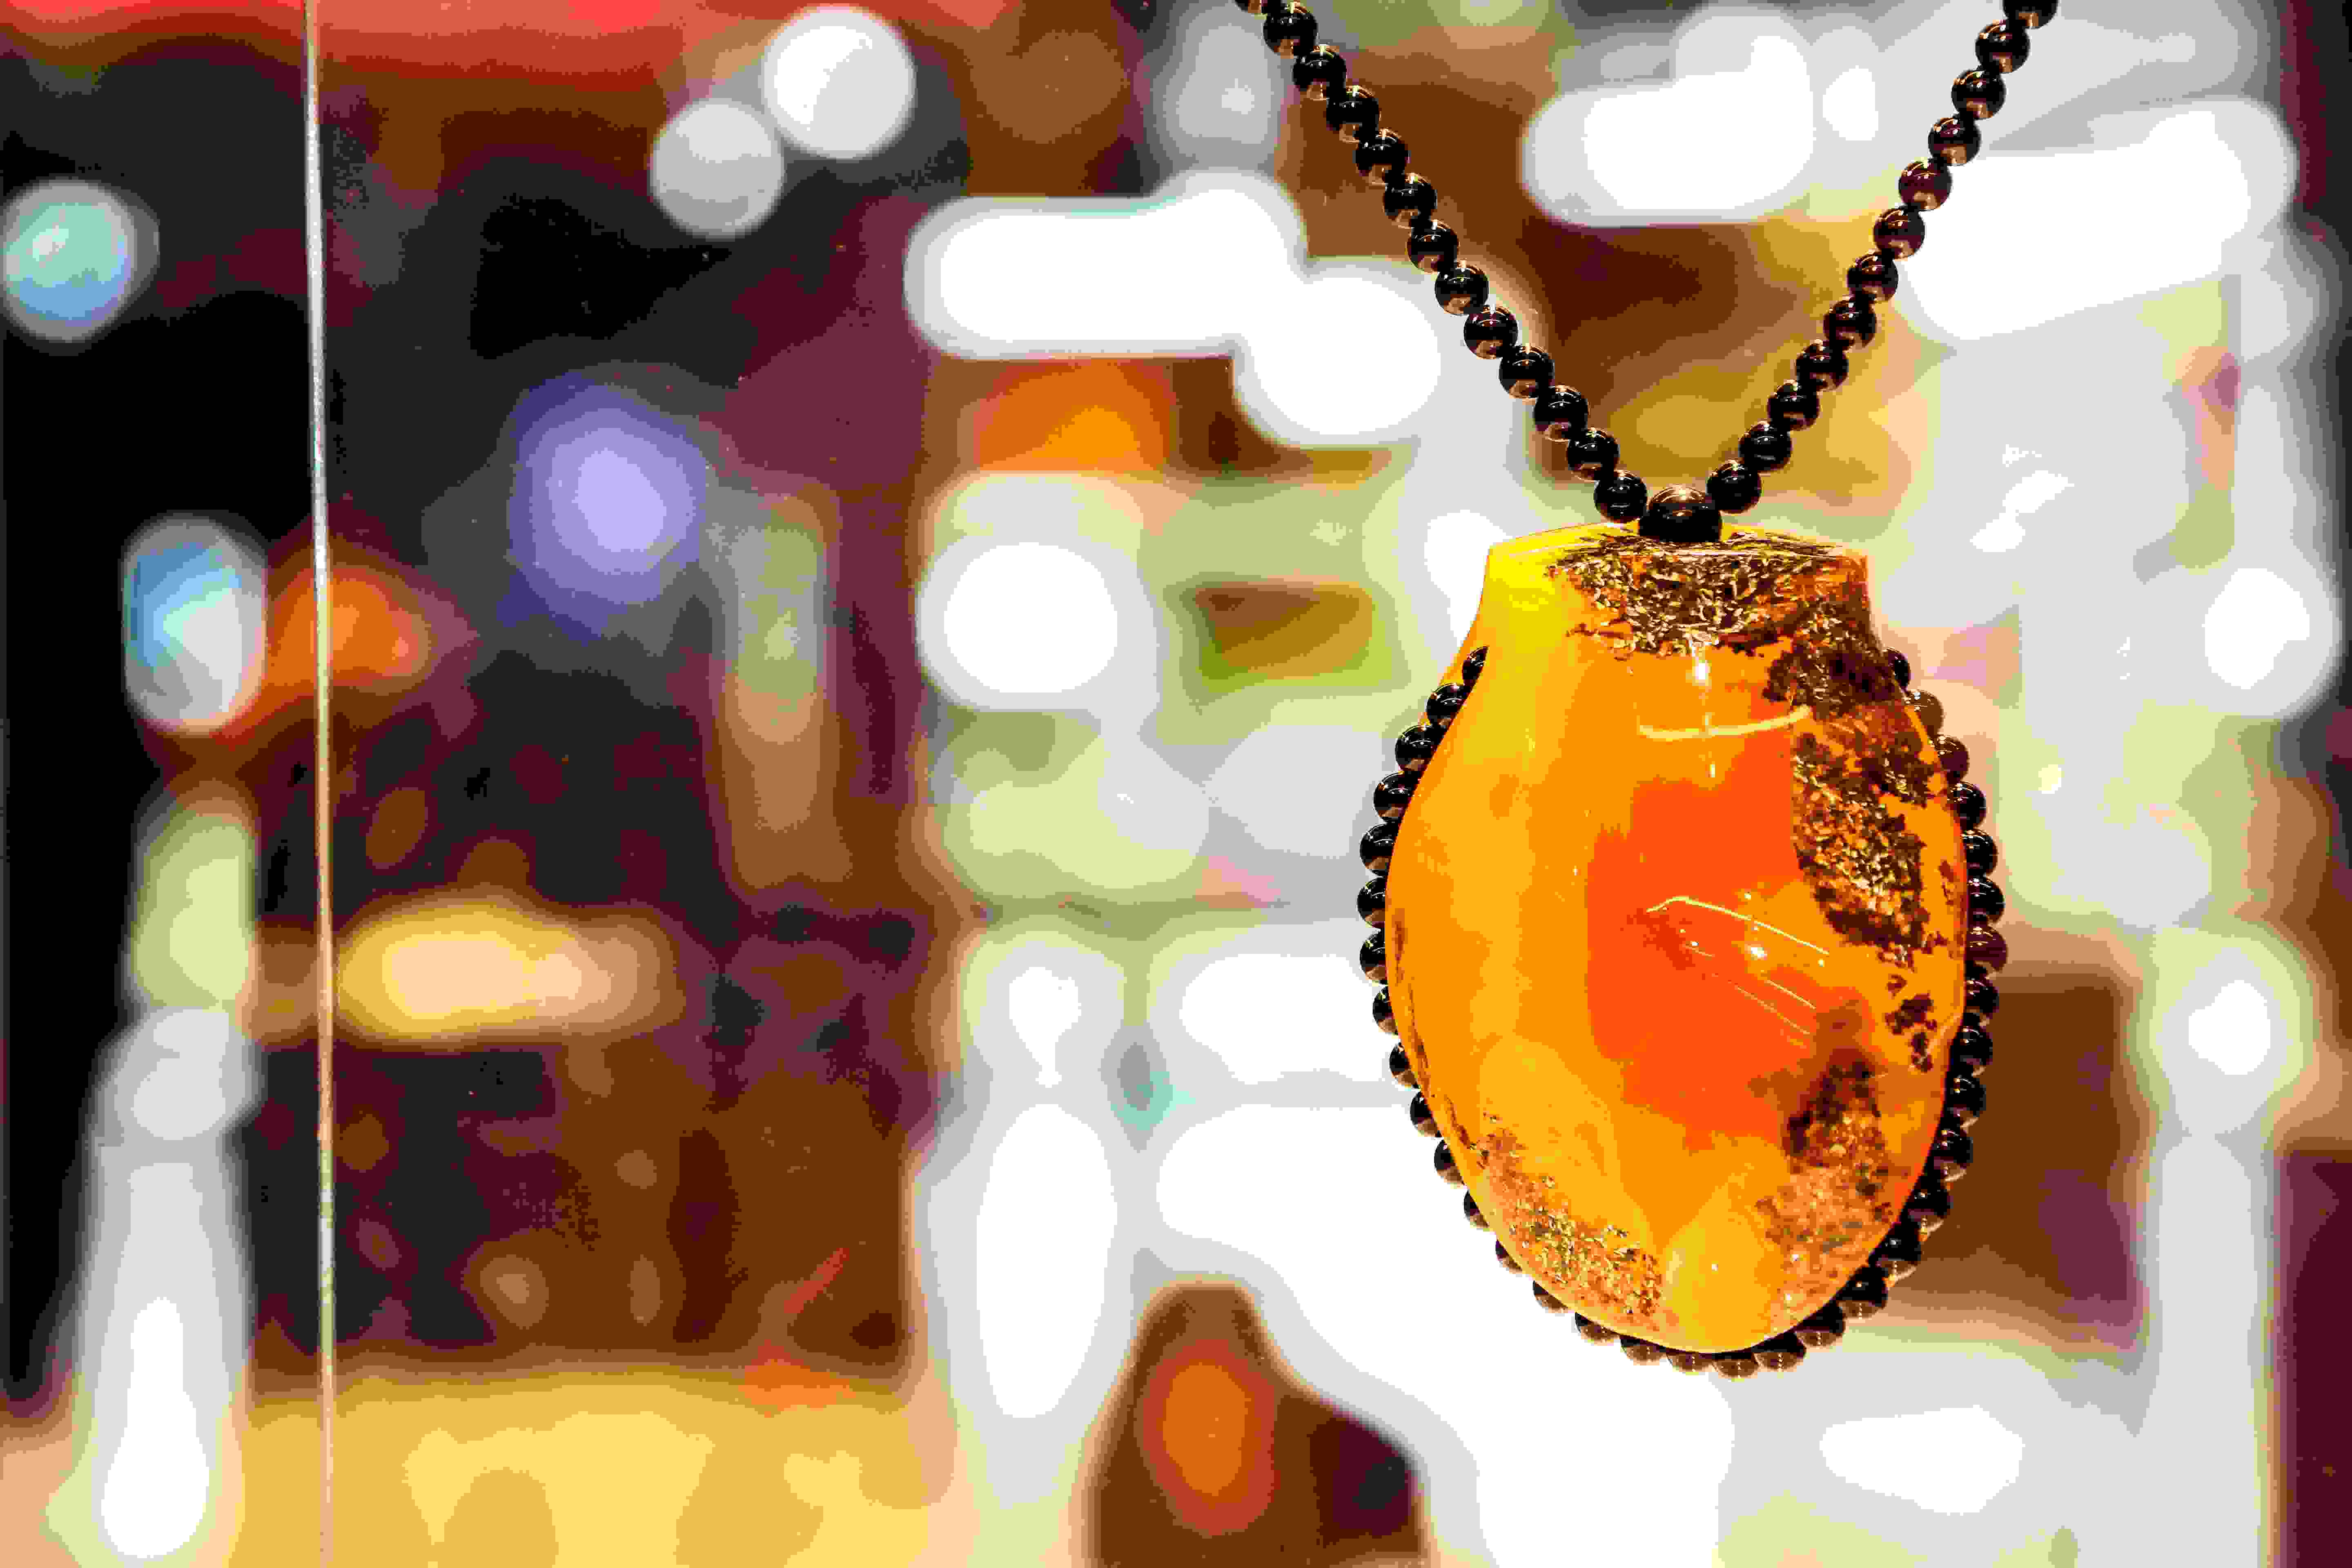 Baltic Amber in Tour de Taxis